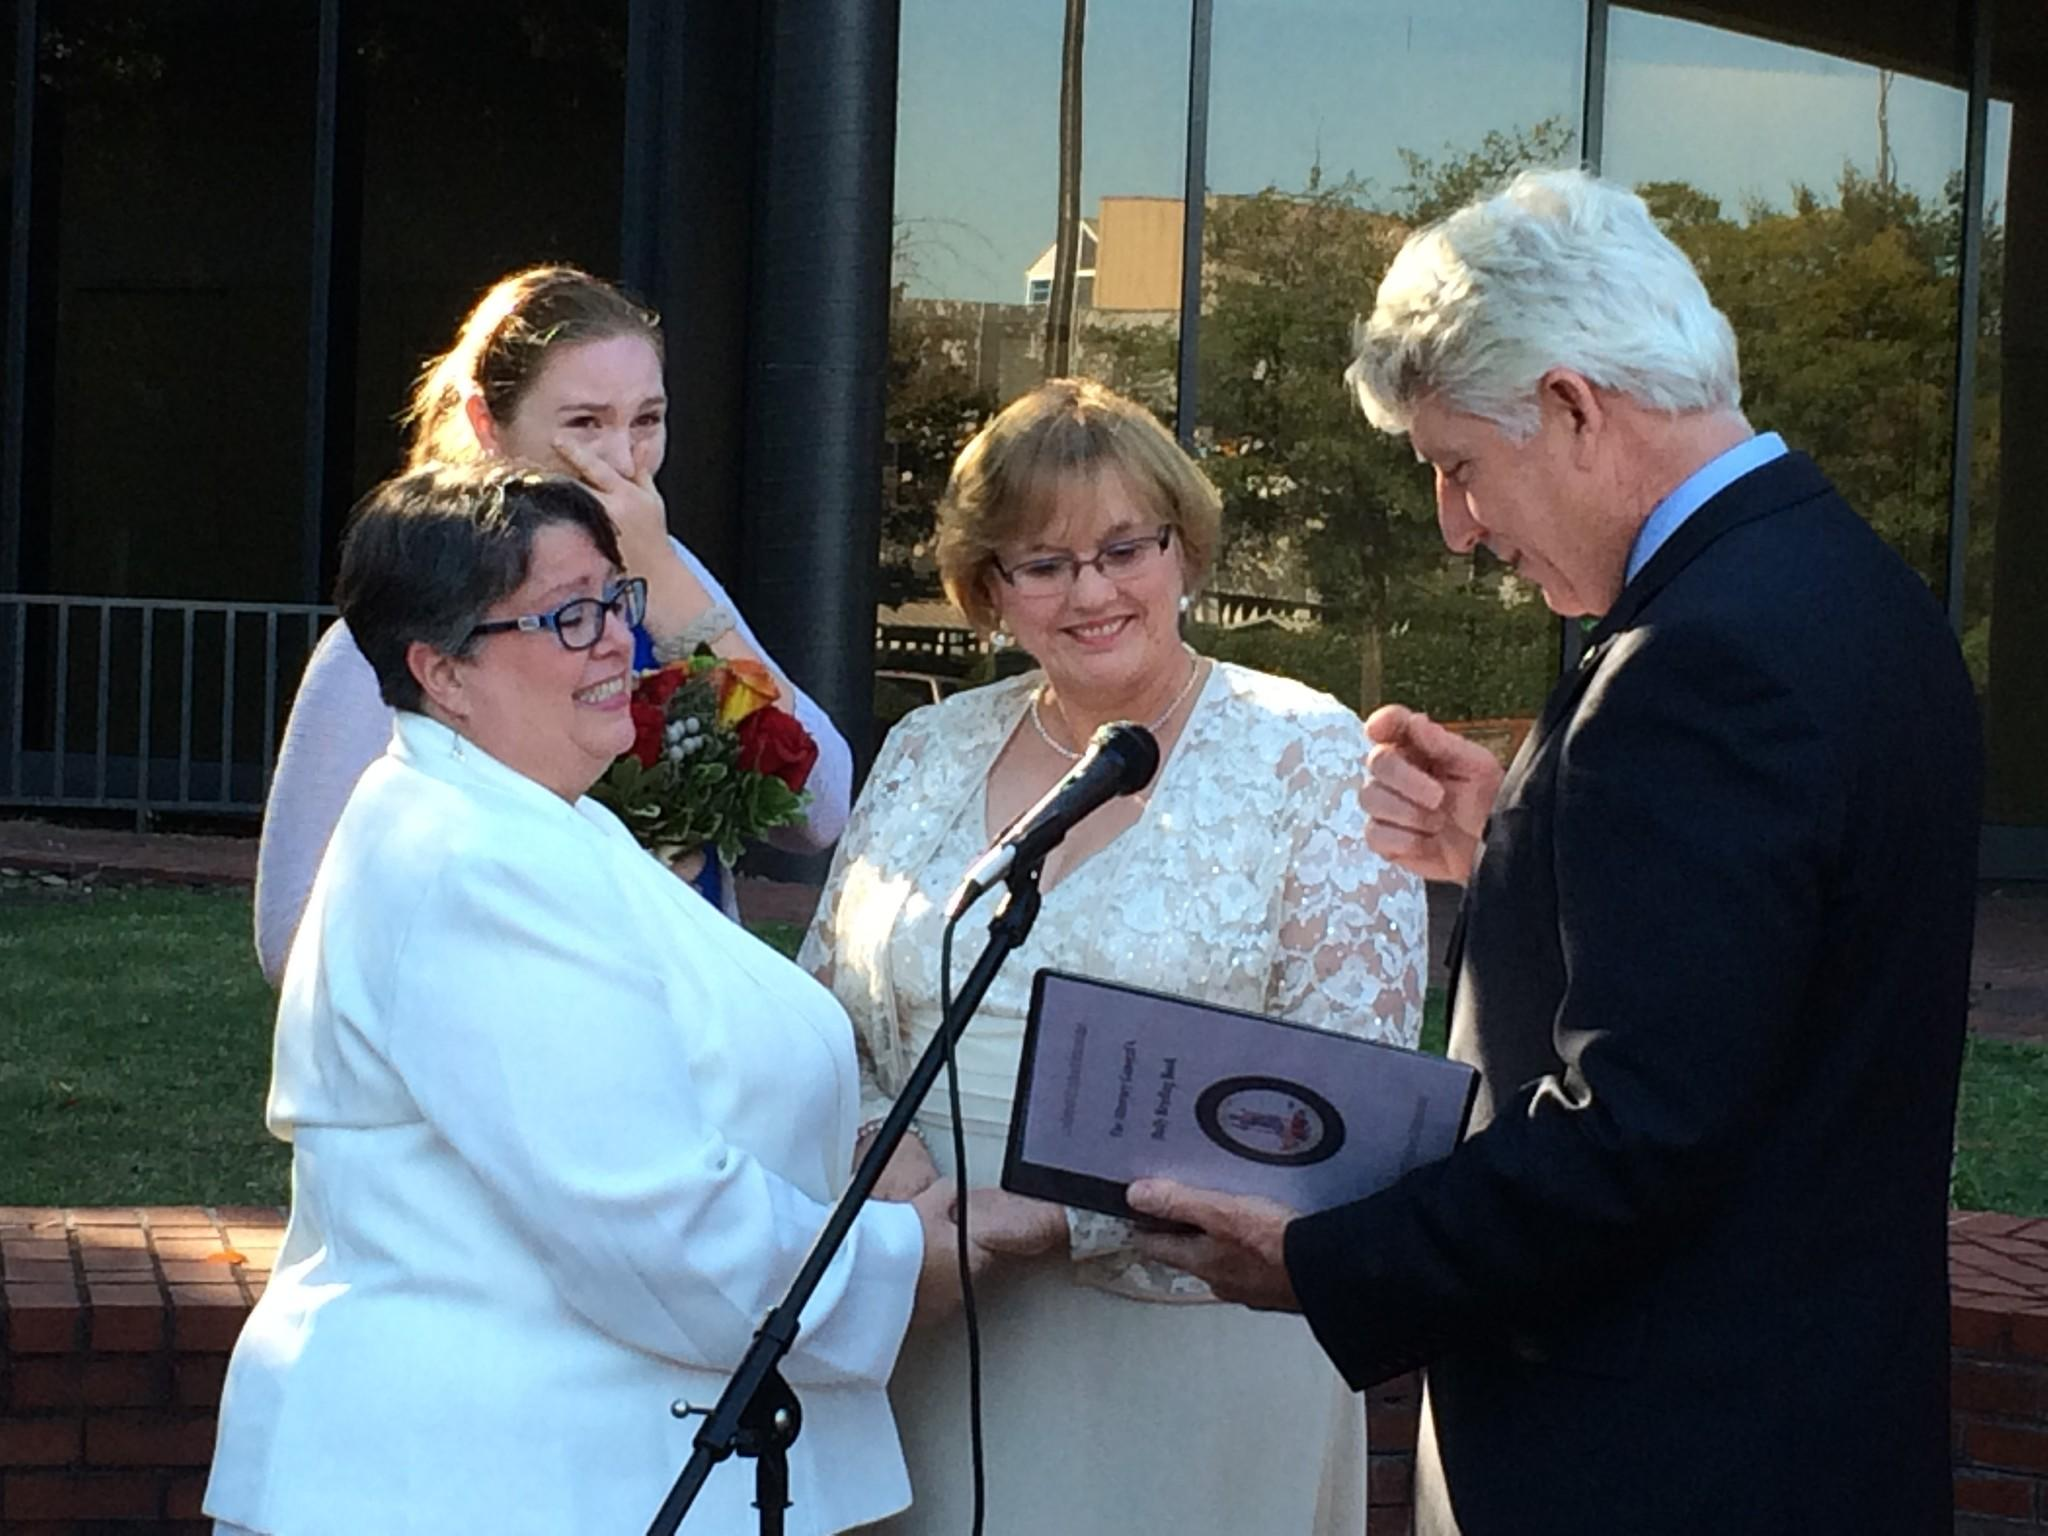 Carol Schall and Mary Townley renew their wedding vows Monday afternoon outside the circuit courthouse in Richmond. Attorney General Mark Herring officiated. Emily, their daughter, shed a few tears. The couple was originally married in California, but with Monday's Supreme Court action, their marriage is now legal in Virginia.